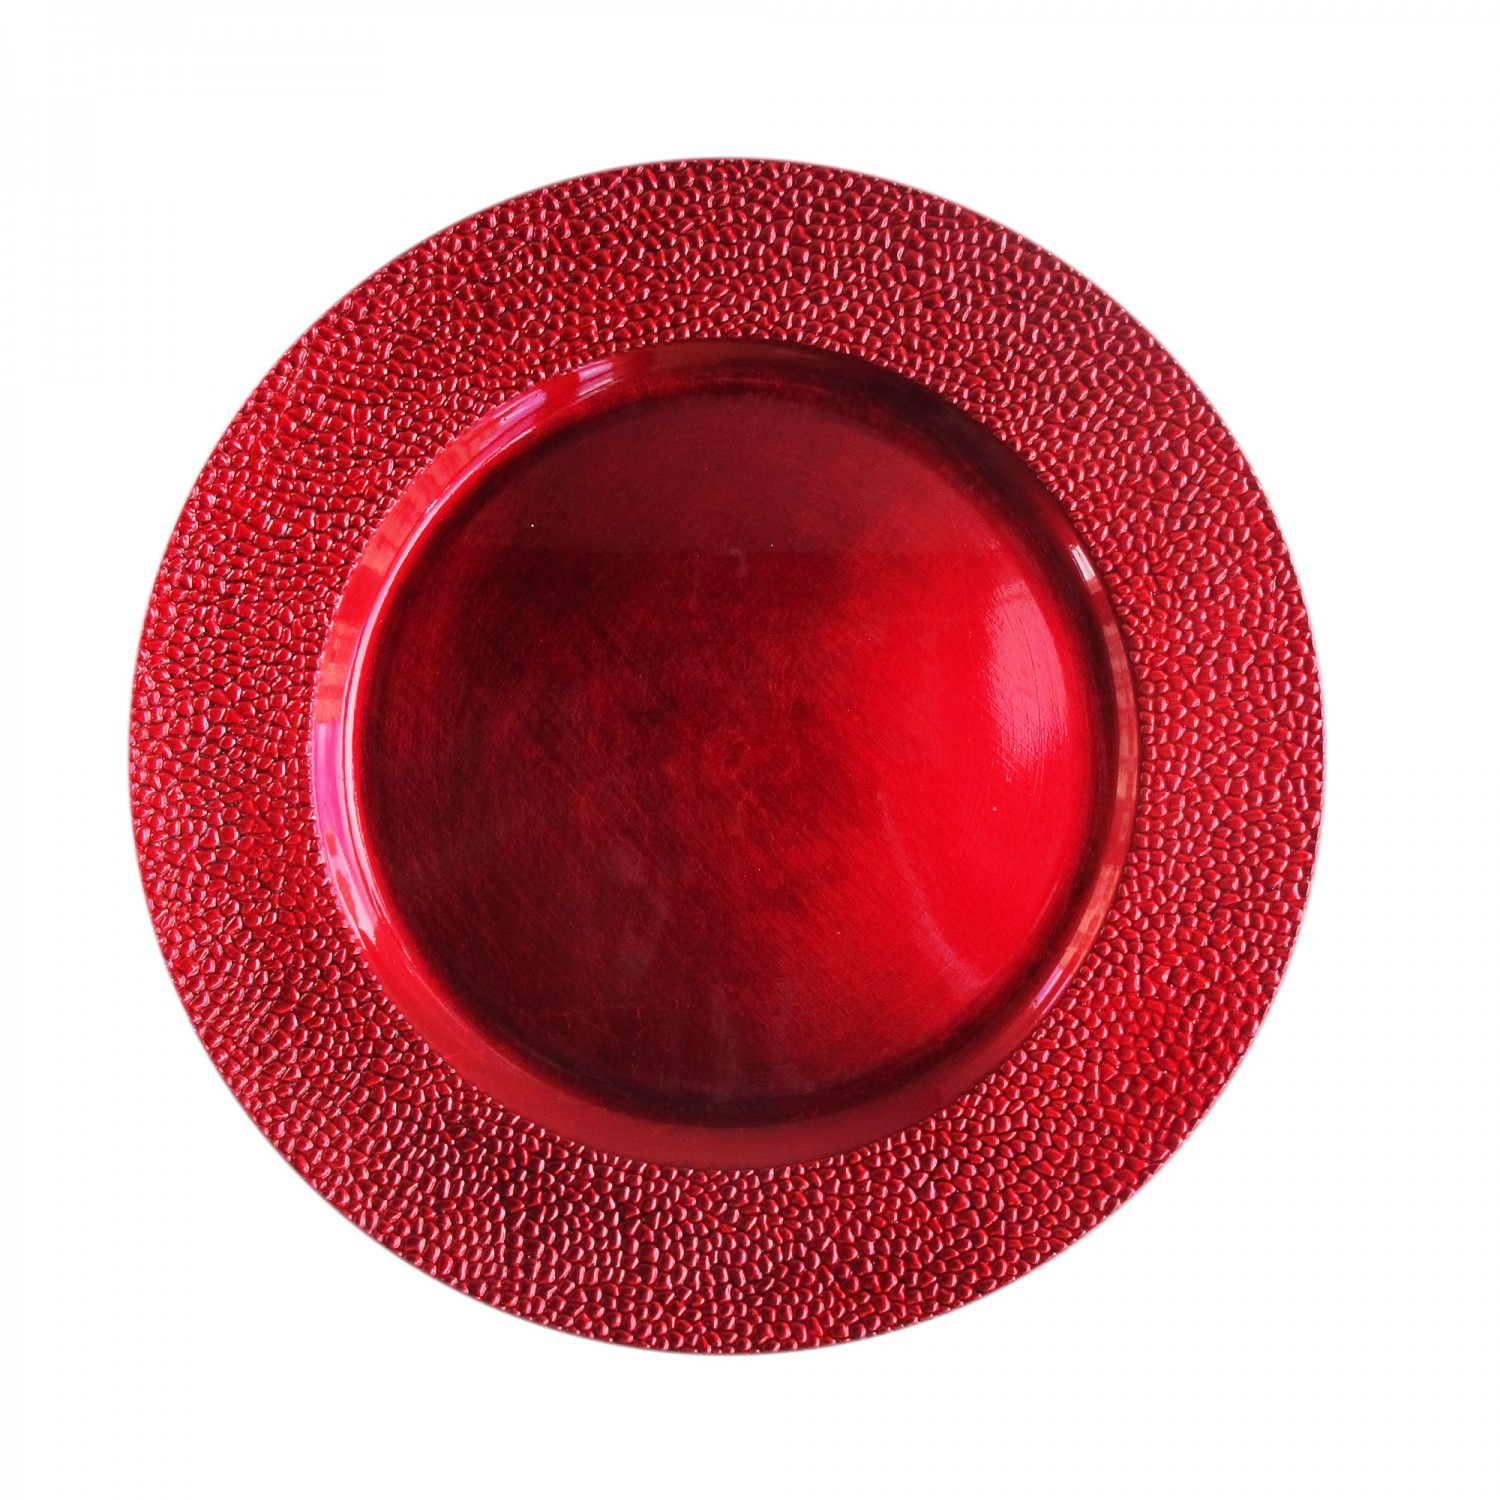 The Jay Companies 1182762 Round Red Pebbled Charger Plate 13""